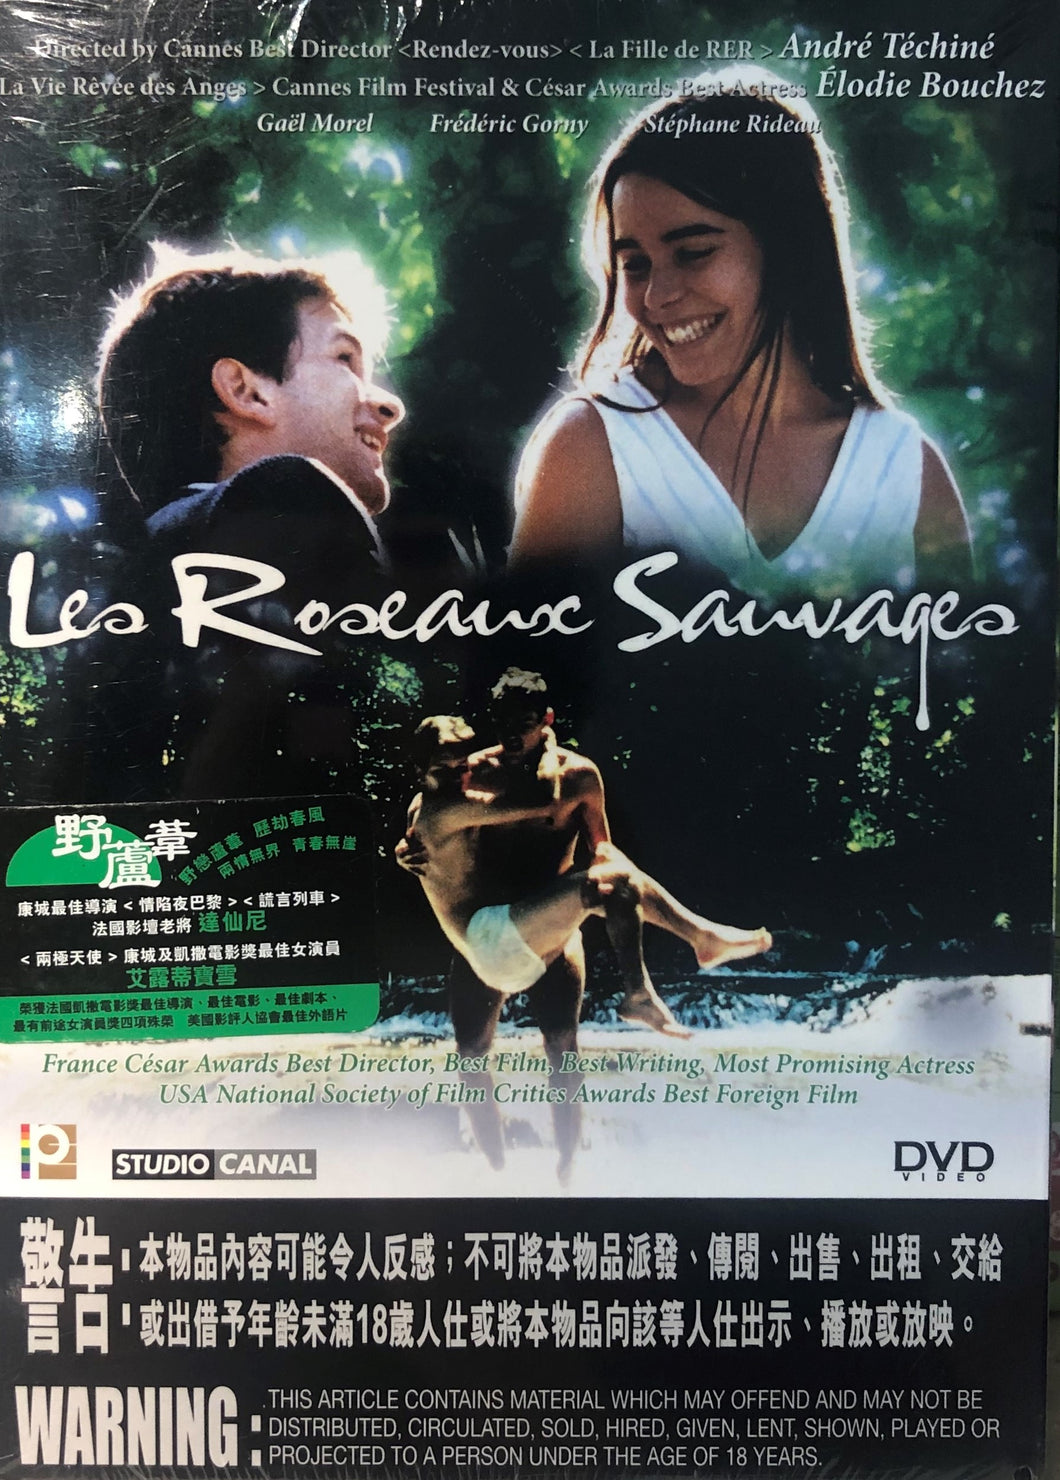 THE WILD REEDS aka Les Roseaux Sauvages 1993 (FRENCH MOVIE) DVD ENGLISH SUB (REGION 3)